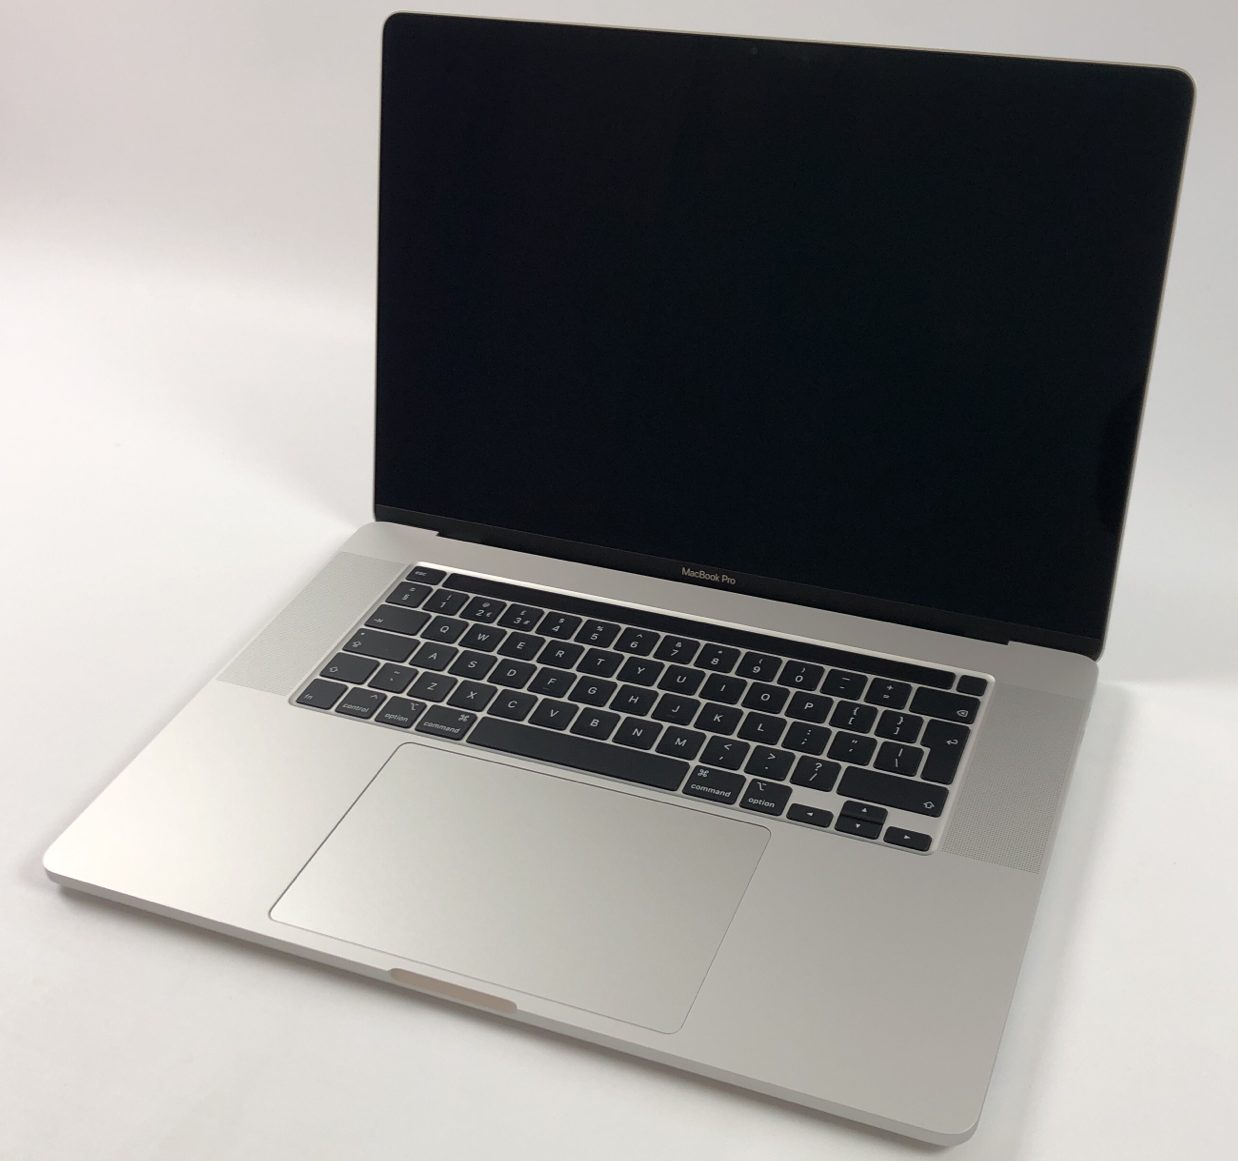 """MacBook Pro 16"""" Touch Bar Late 2019 (Intel 8-Core i9 2.3 GHz 16 GB RAM 1 TB SSD), Silver, Intel 8-Core i9 2.3 GHz, 16 GB RAM, 1 TB SSD, image 1"""